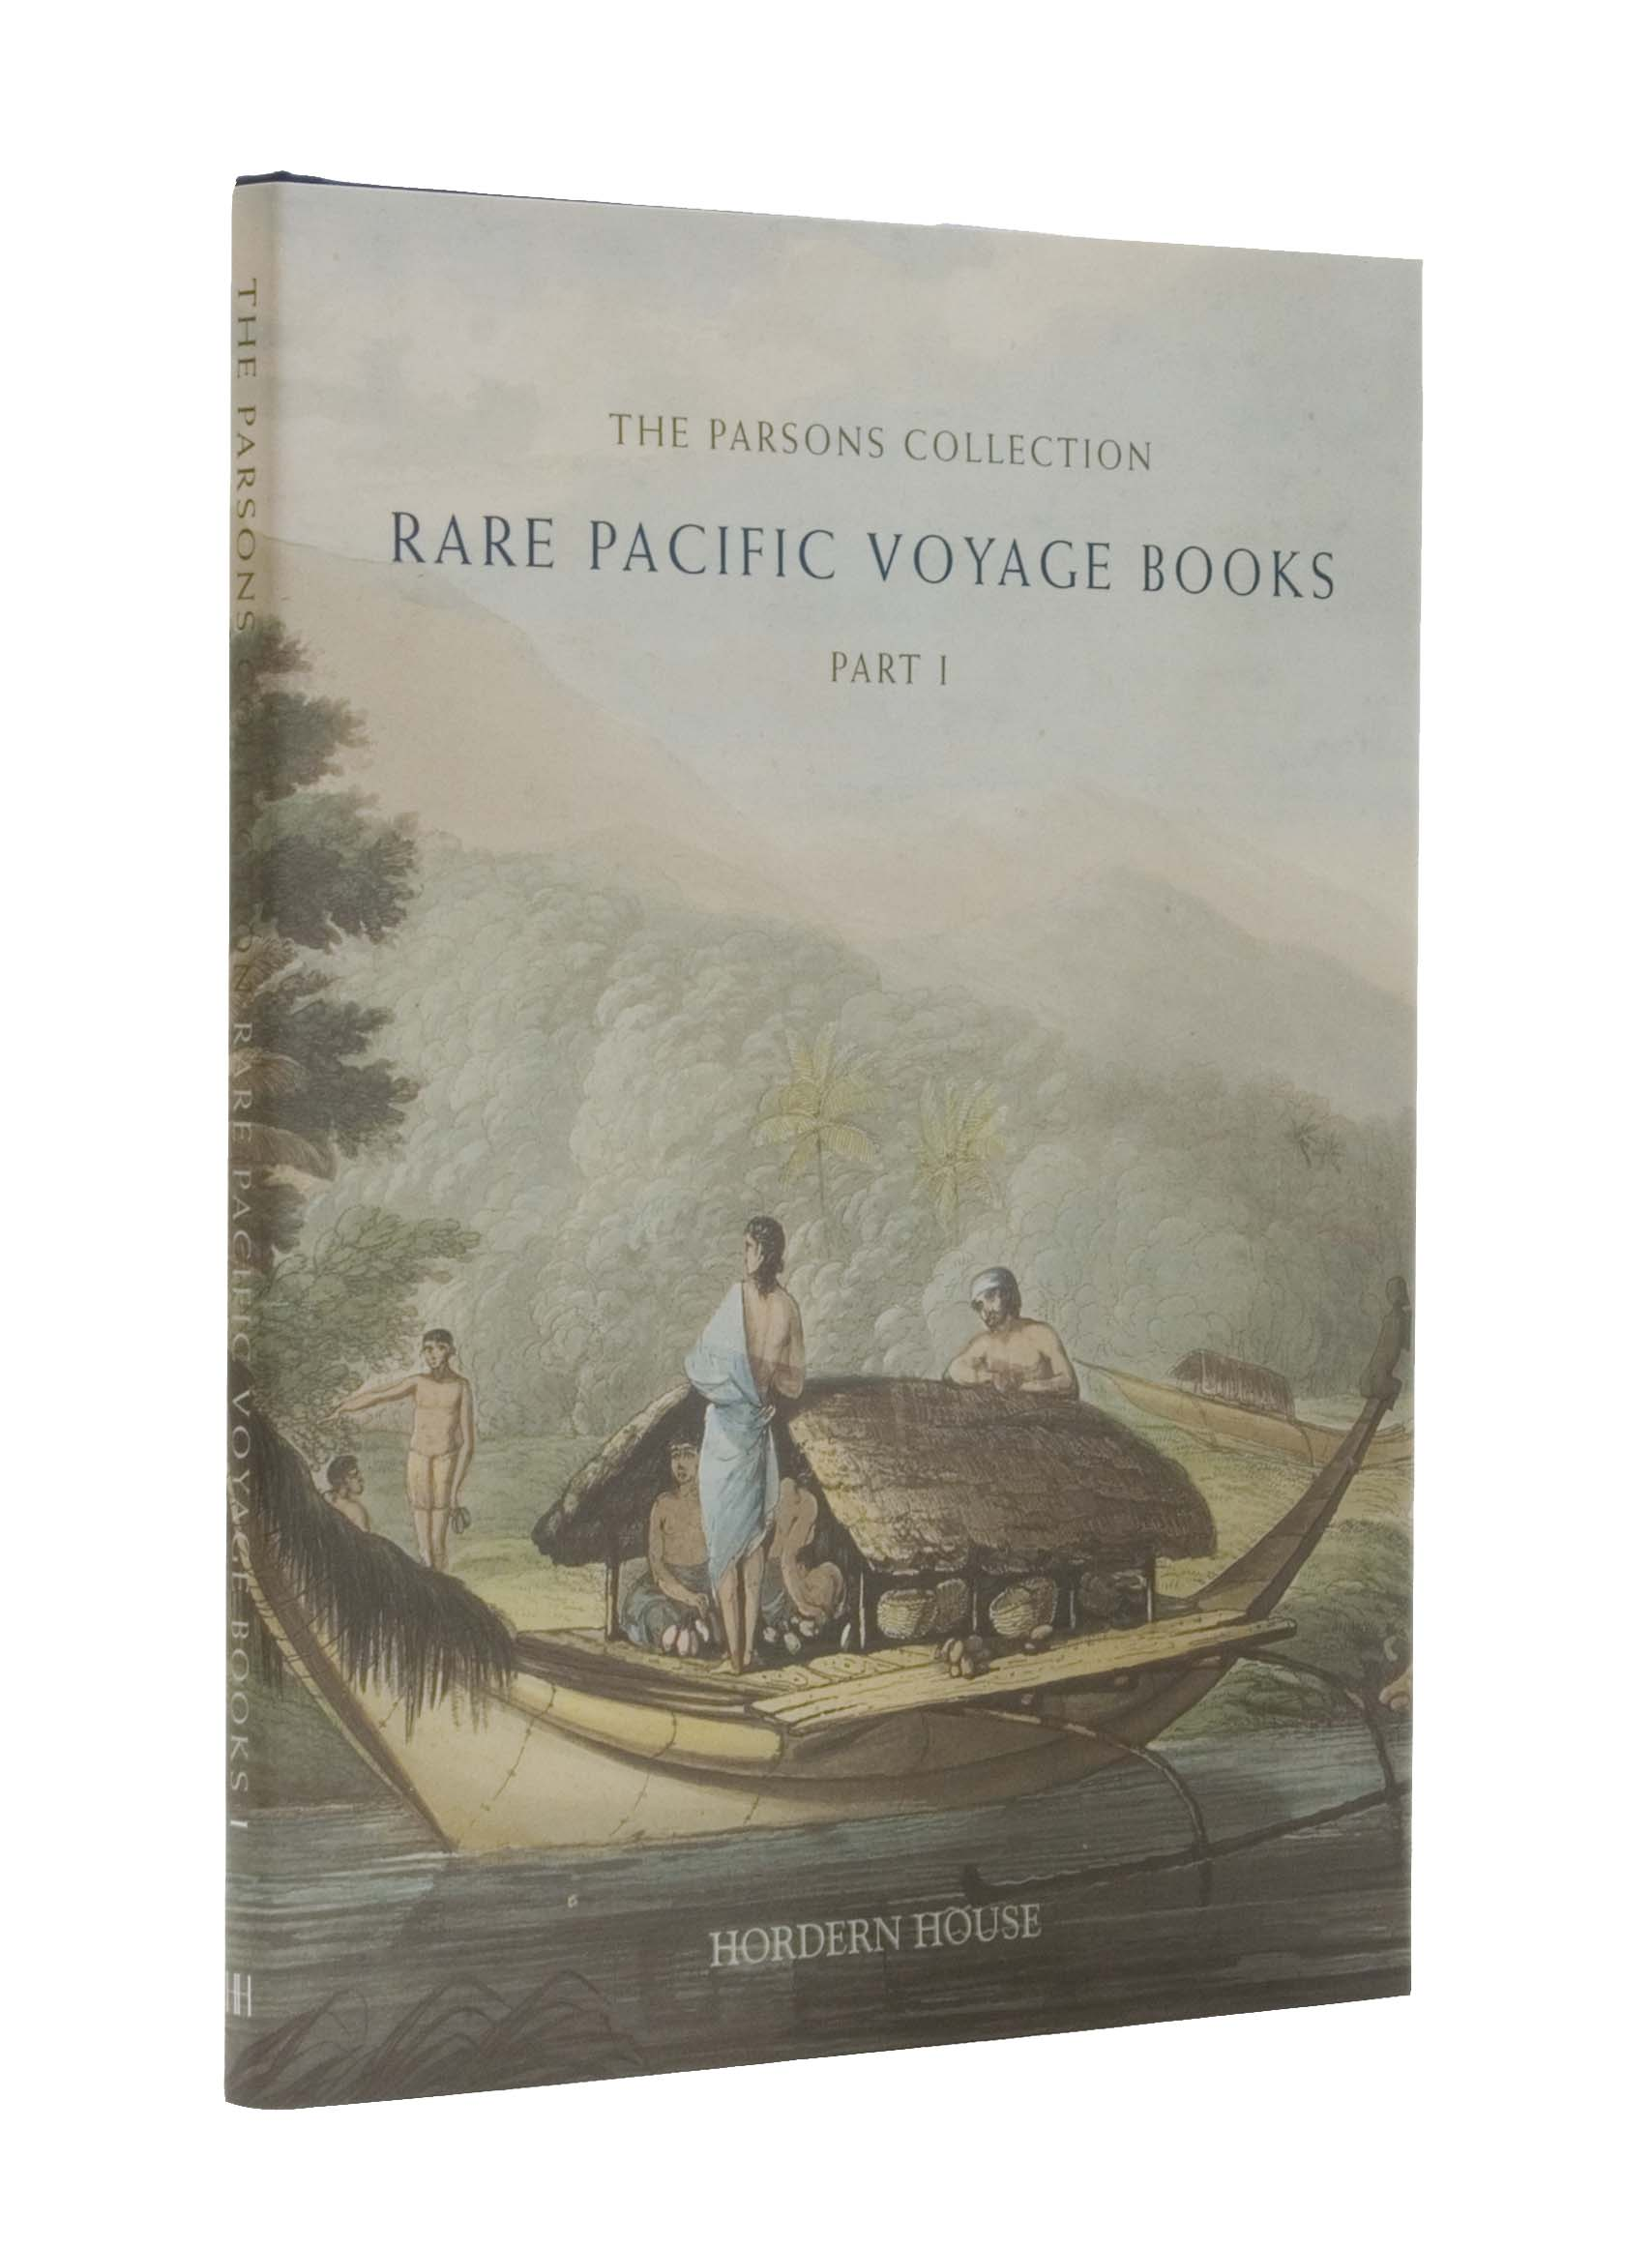 Rare Pacific Voyage Books: The Parsons Collection Part I